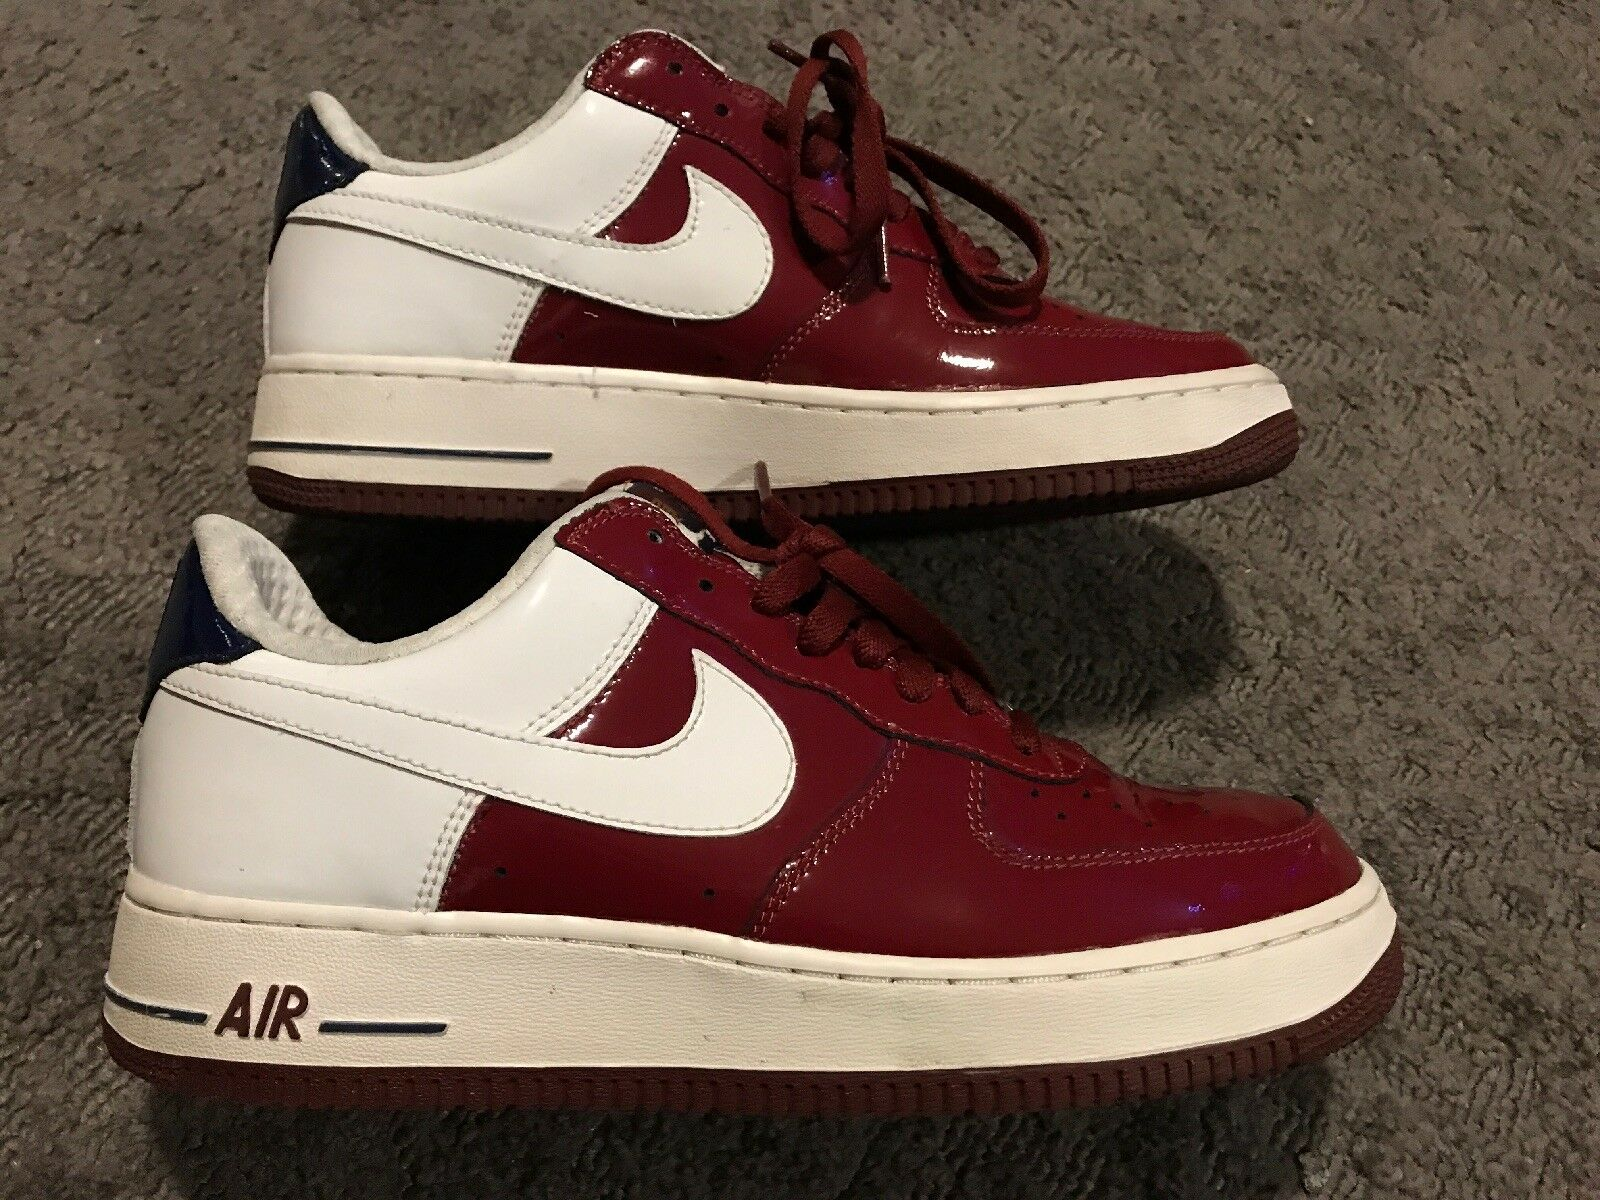 meet 6fb9b ecad7 Air Force 1 Low LeBron Men Size 9